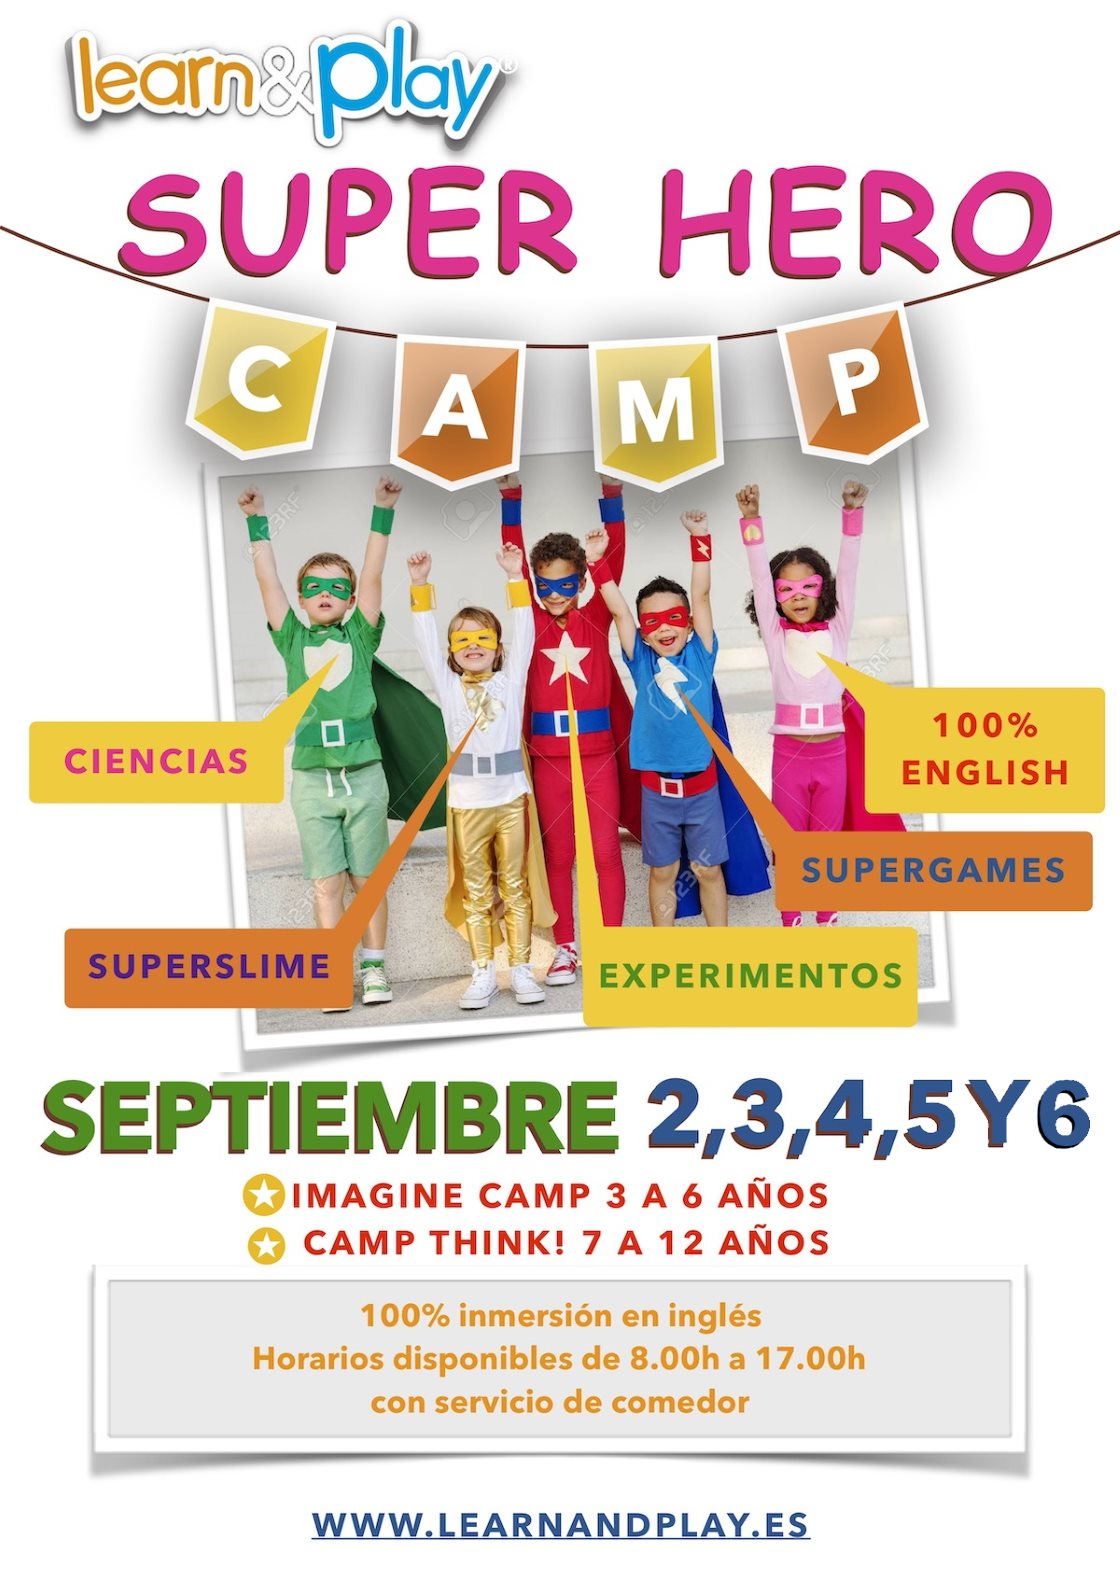 Super hero camp - Learn and play